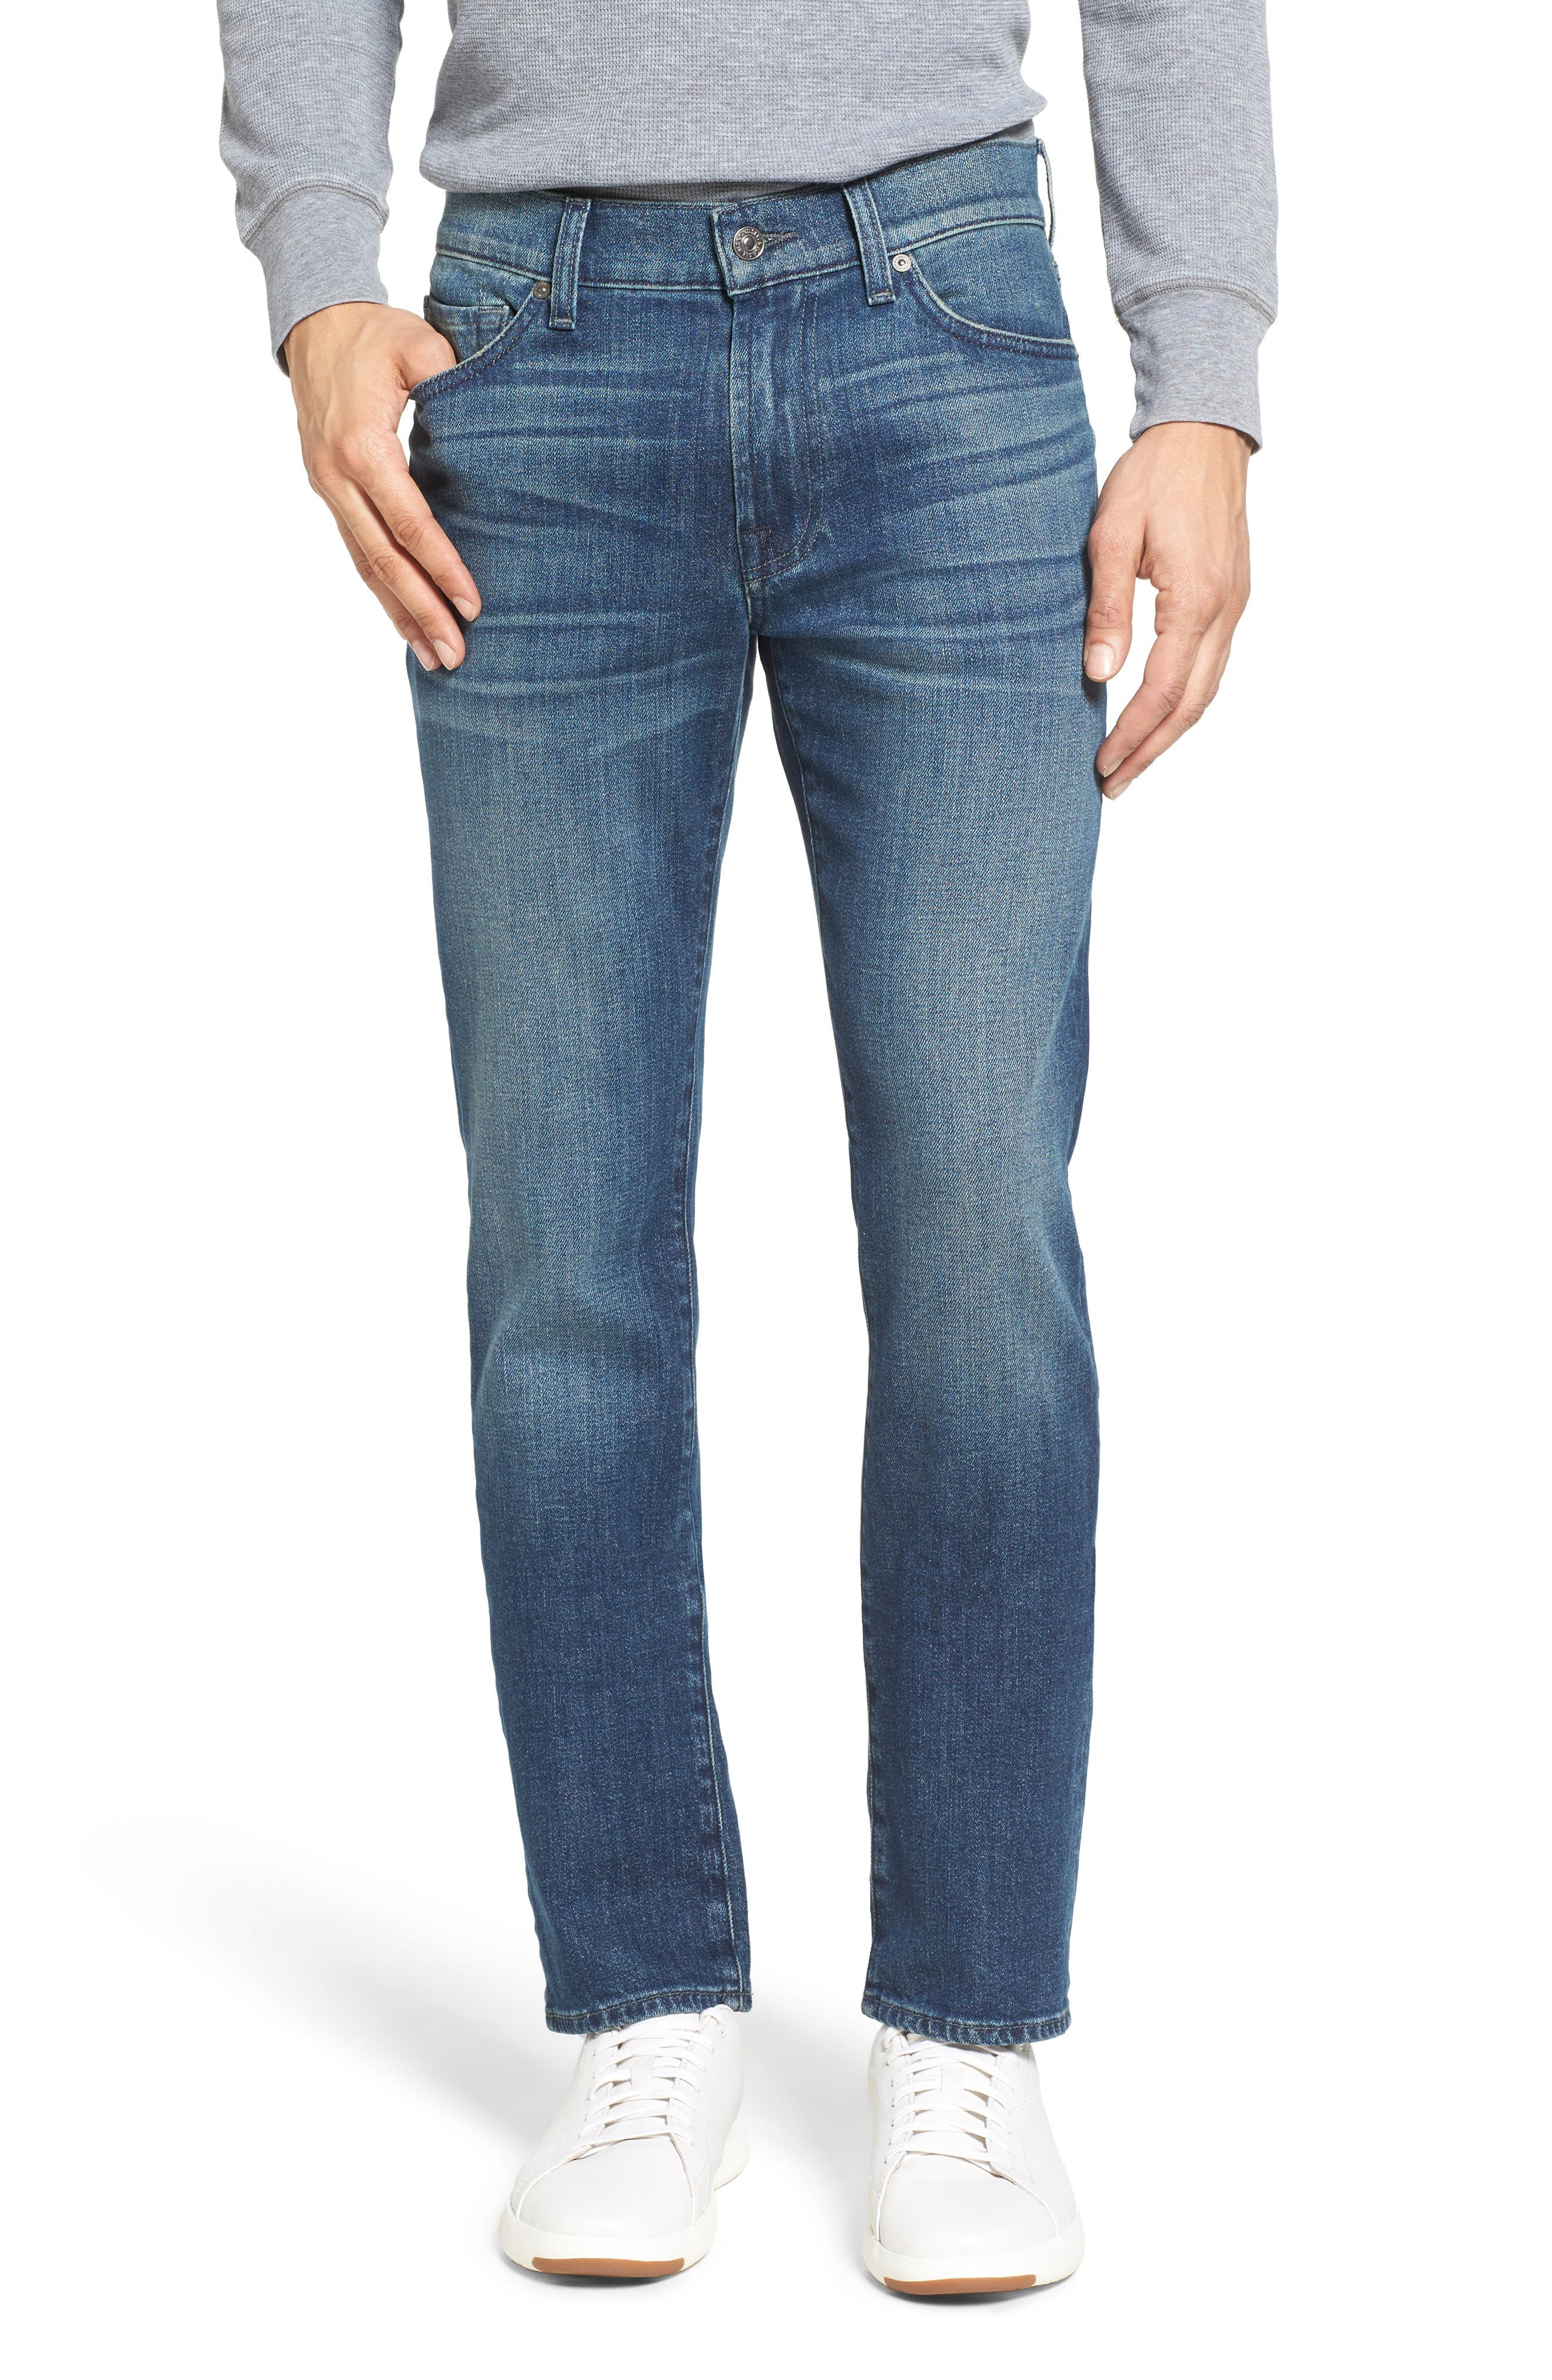 7 For All Mankind Slimmy Slim Fit Jeans (Calgary Blue)